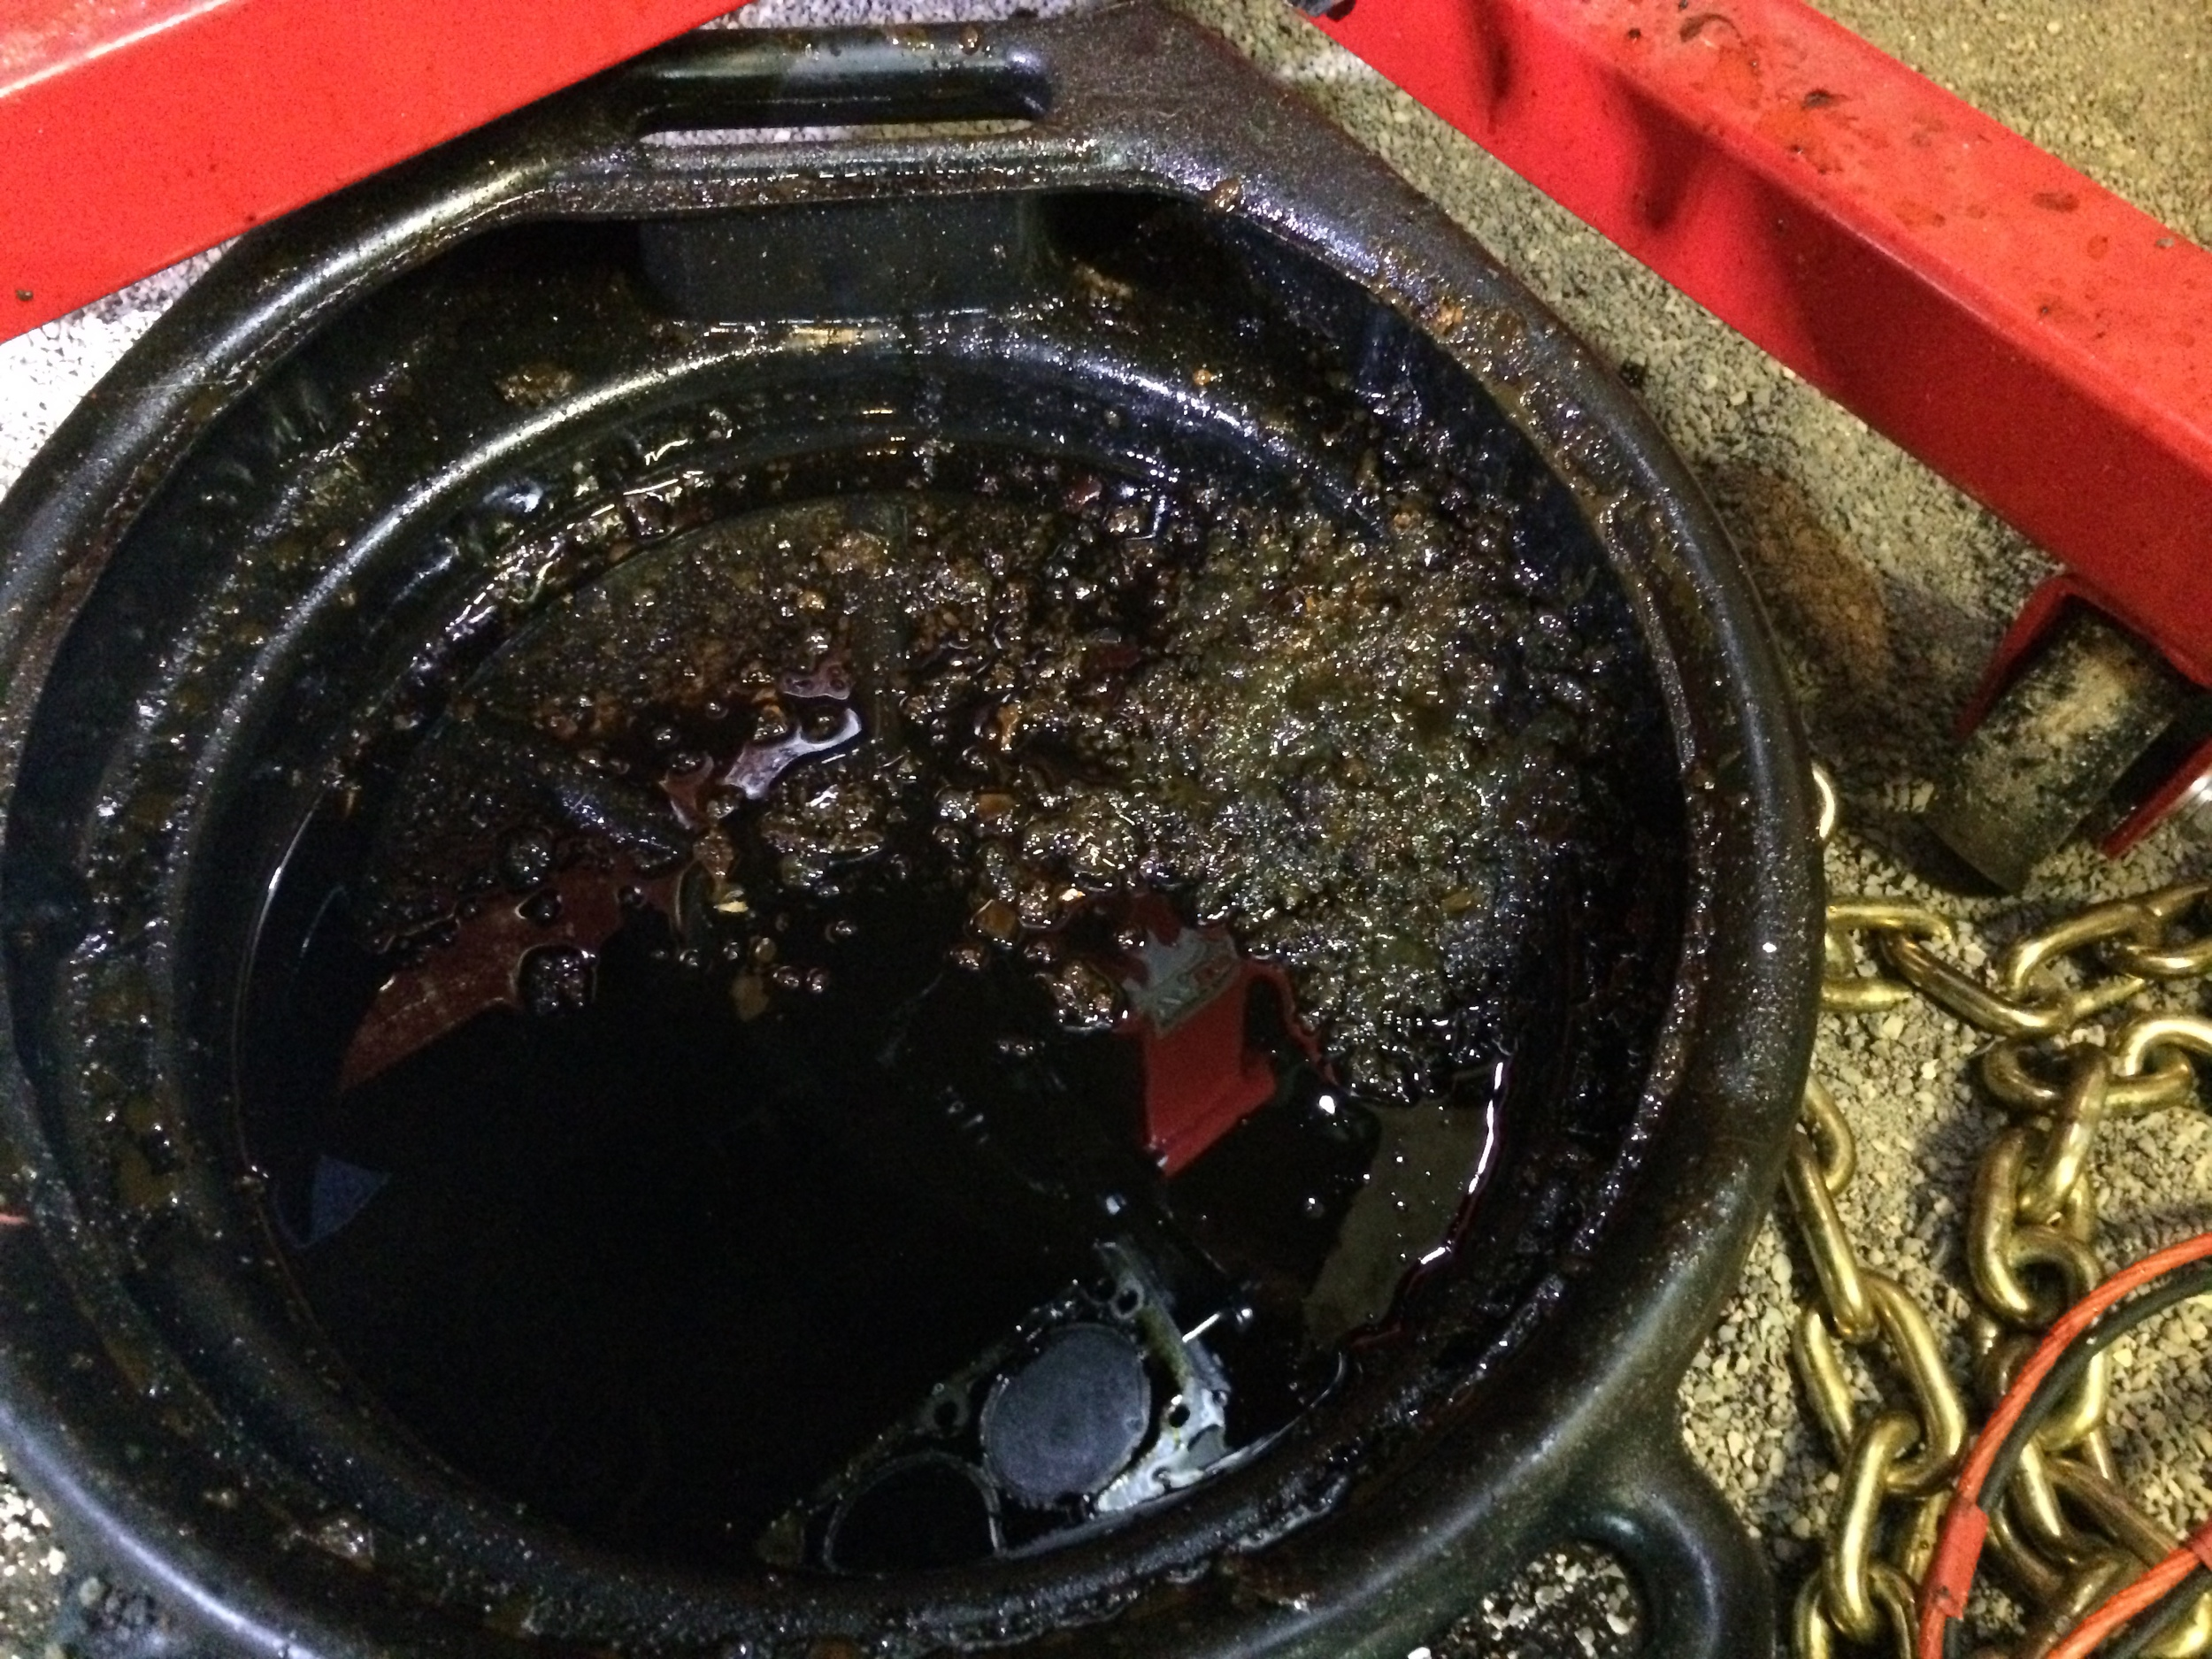 Mud that was pulled out with the pick was deposited in an oil pan. This was from only one side of the engine, and it was still quite dirty.